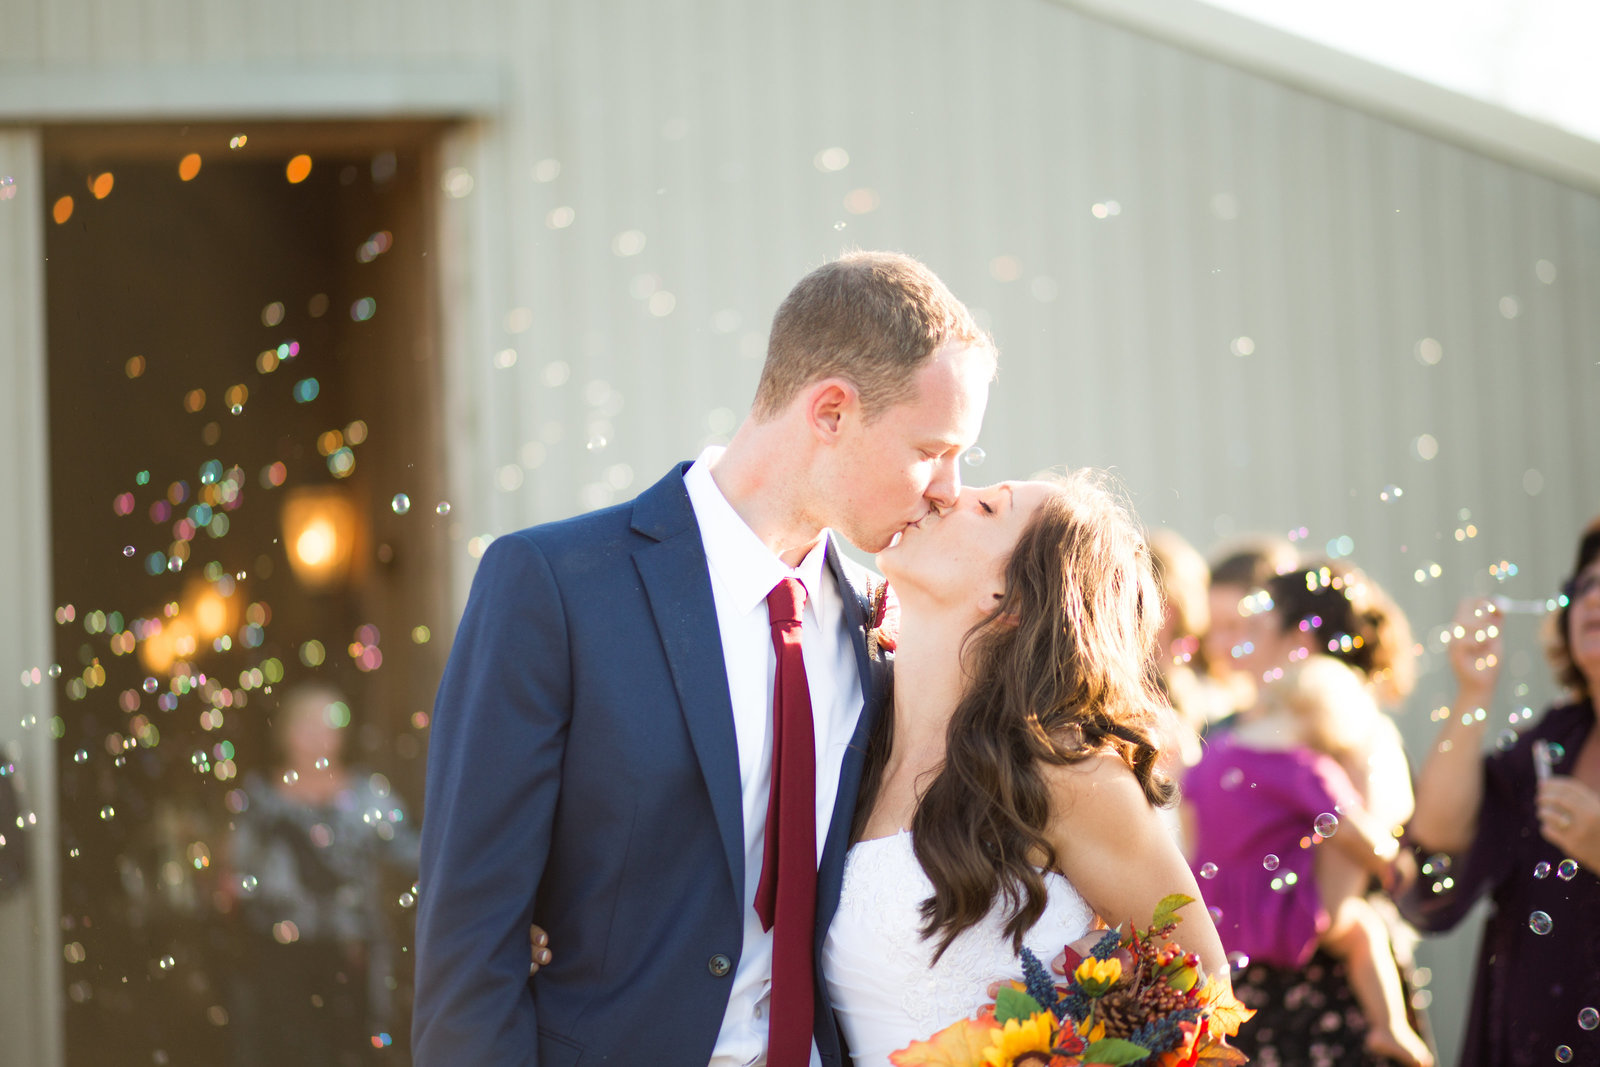 Angie+Jesse-Wolftrap-Farm-Wedding-VA-MermaidlakePhotography-638-50